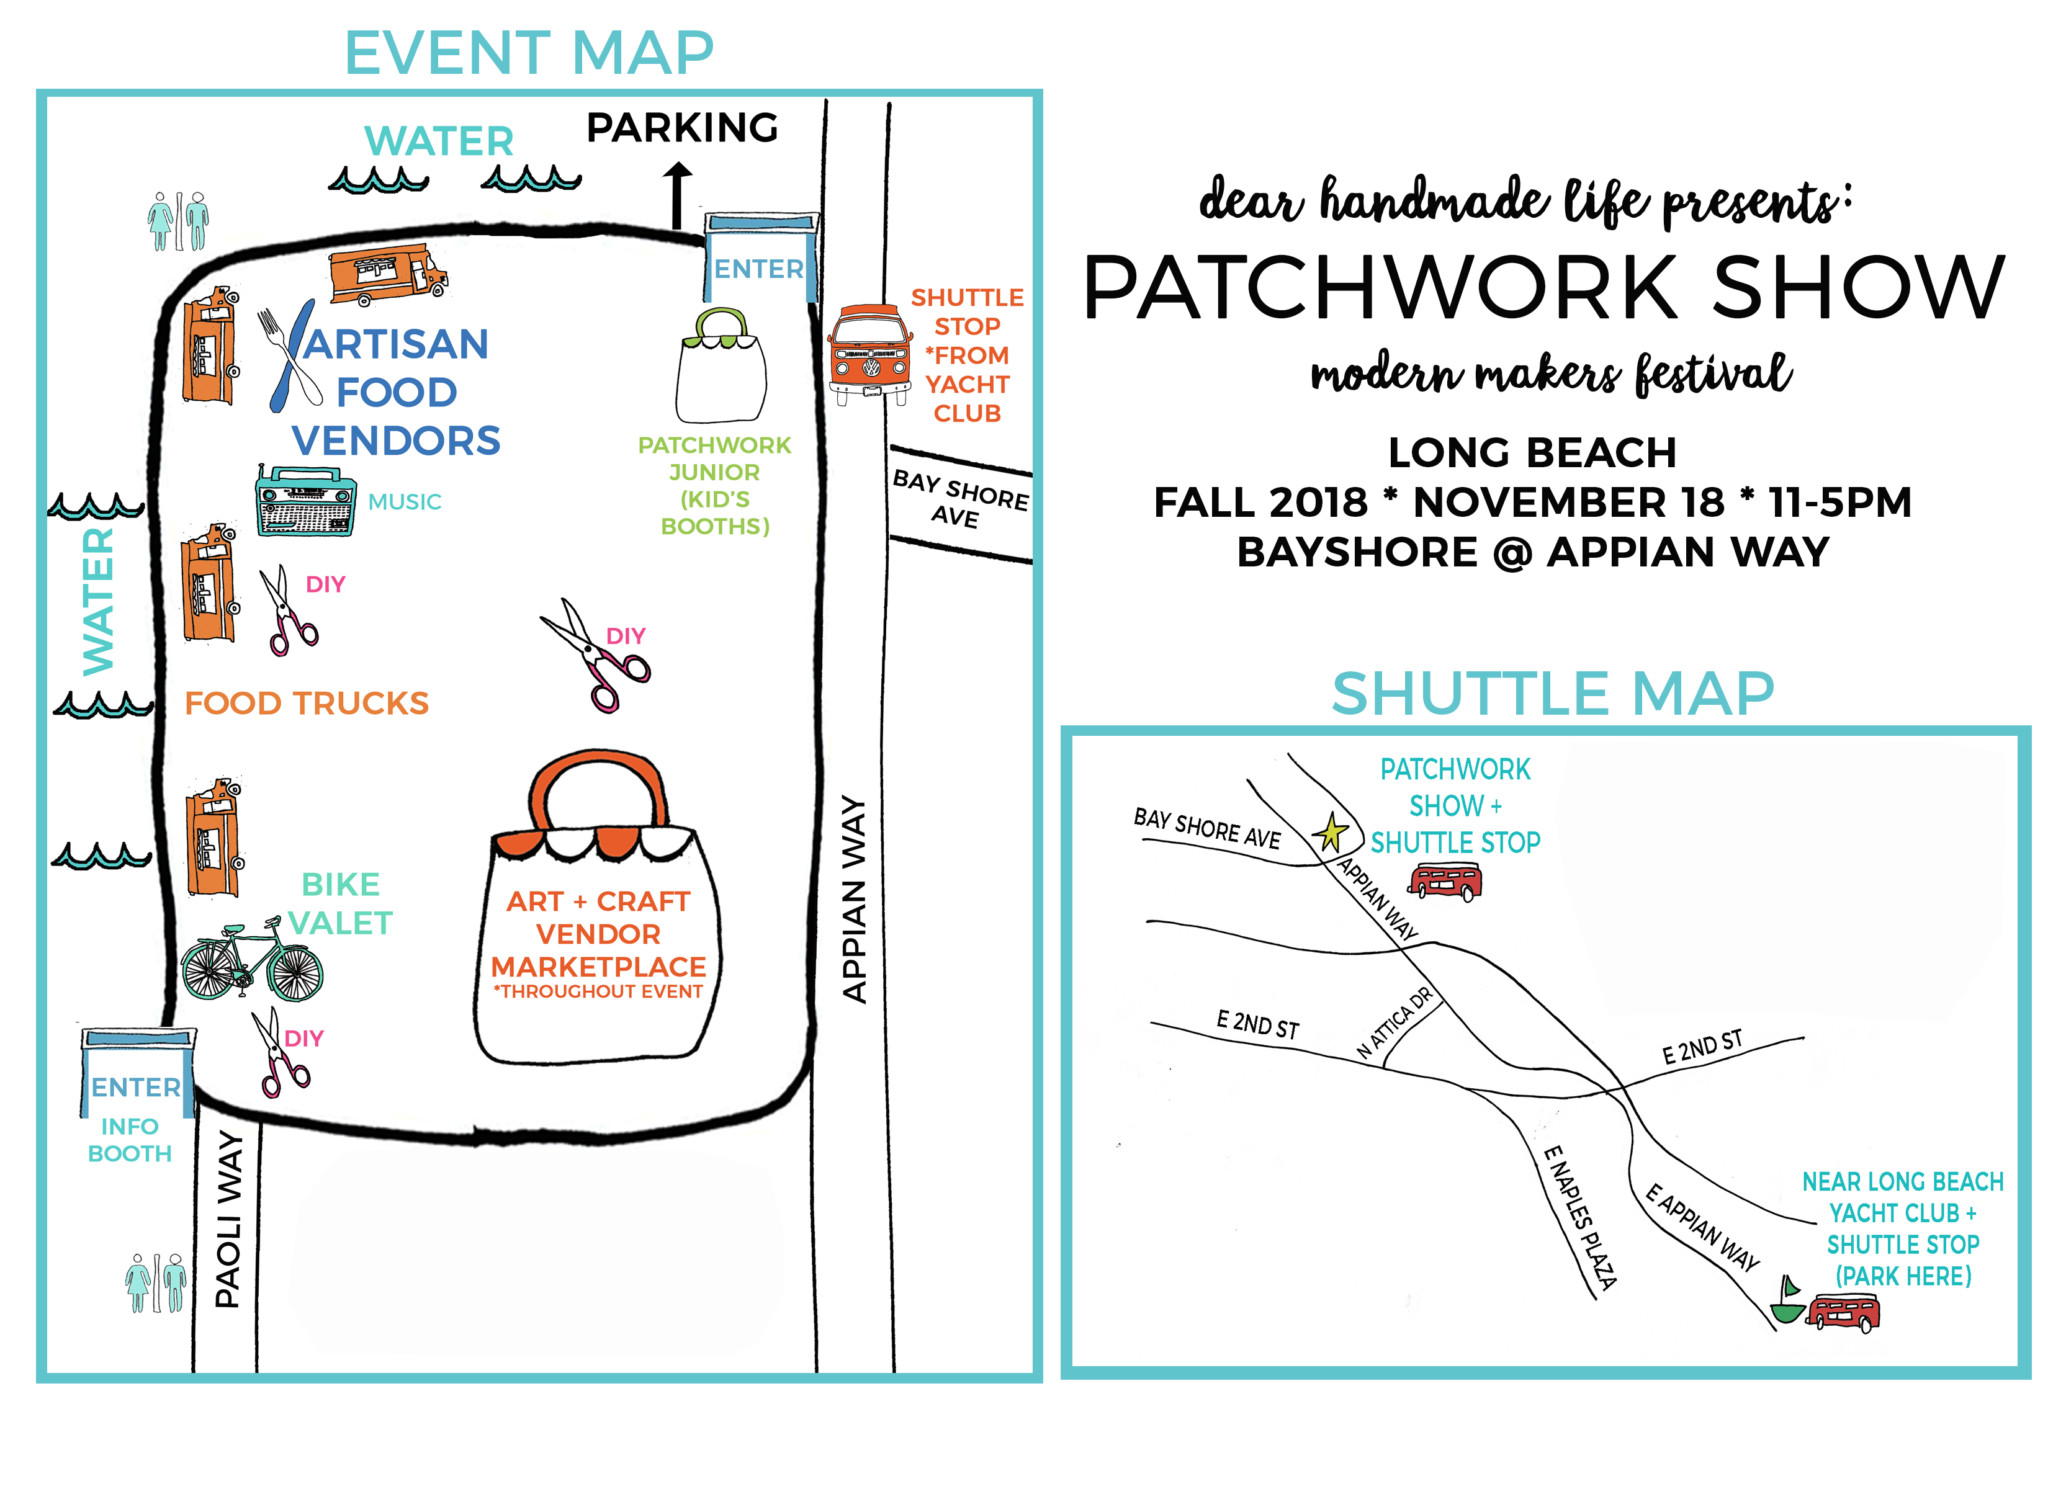 patchwork-show-long-beach-event-and-shuttle-map-fall-2018.jpg